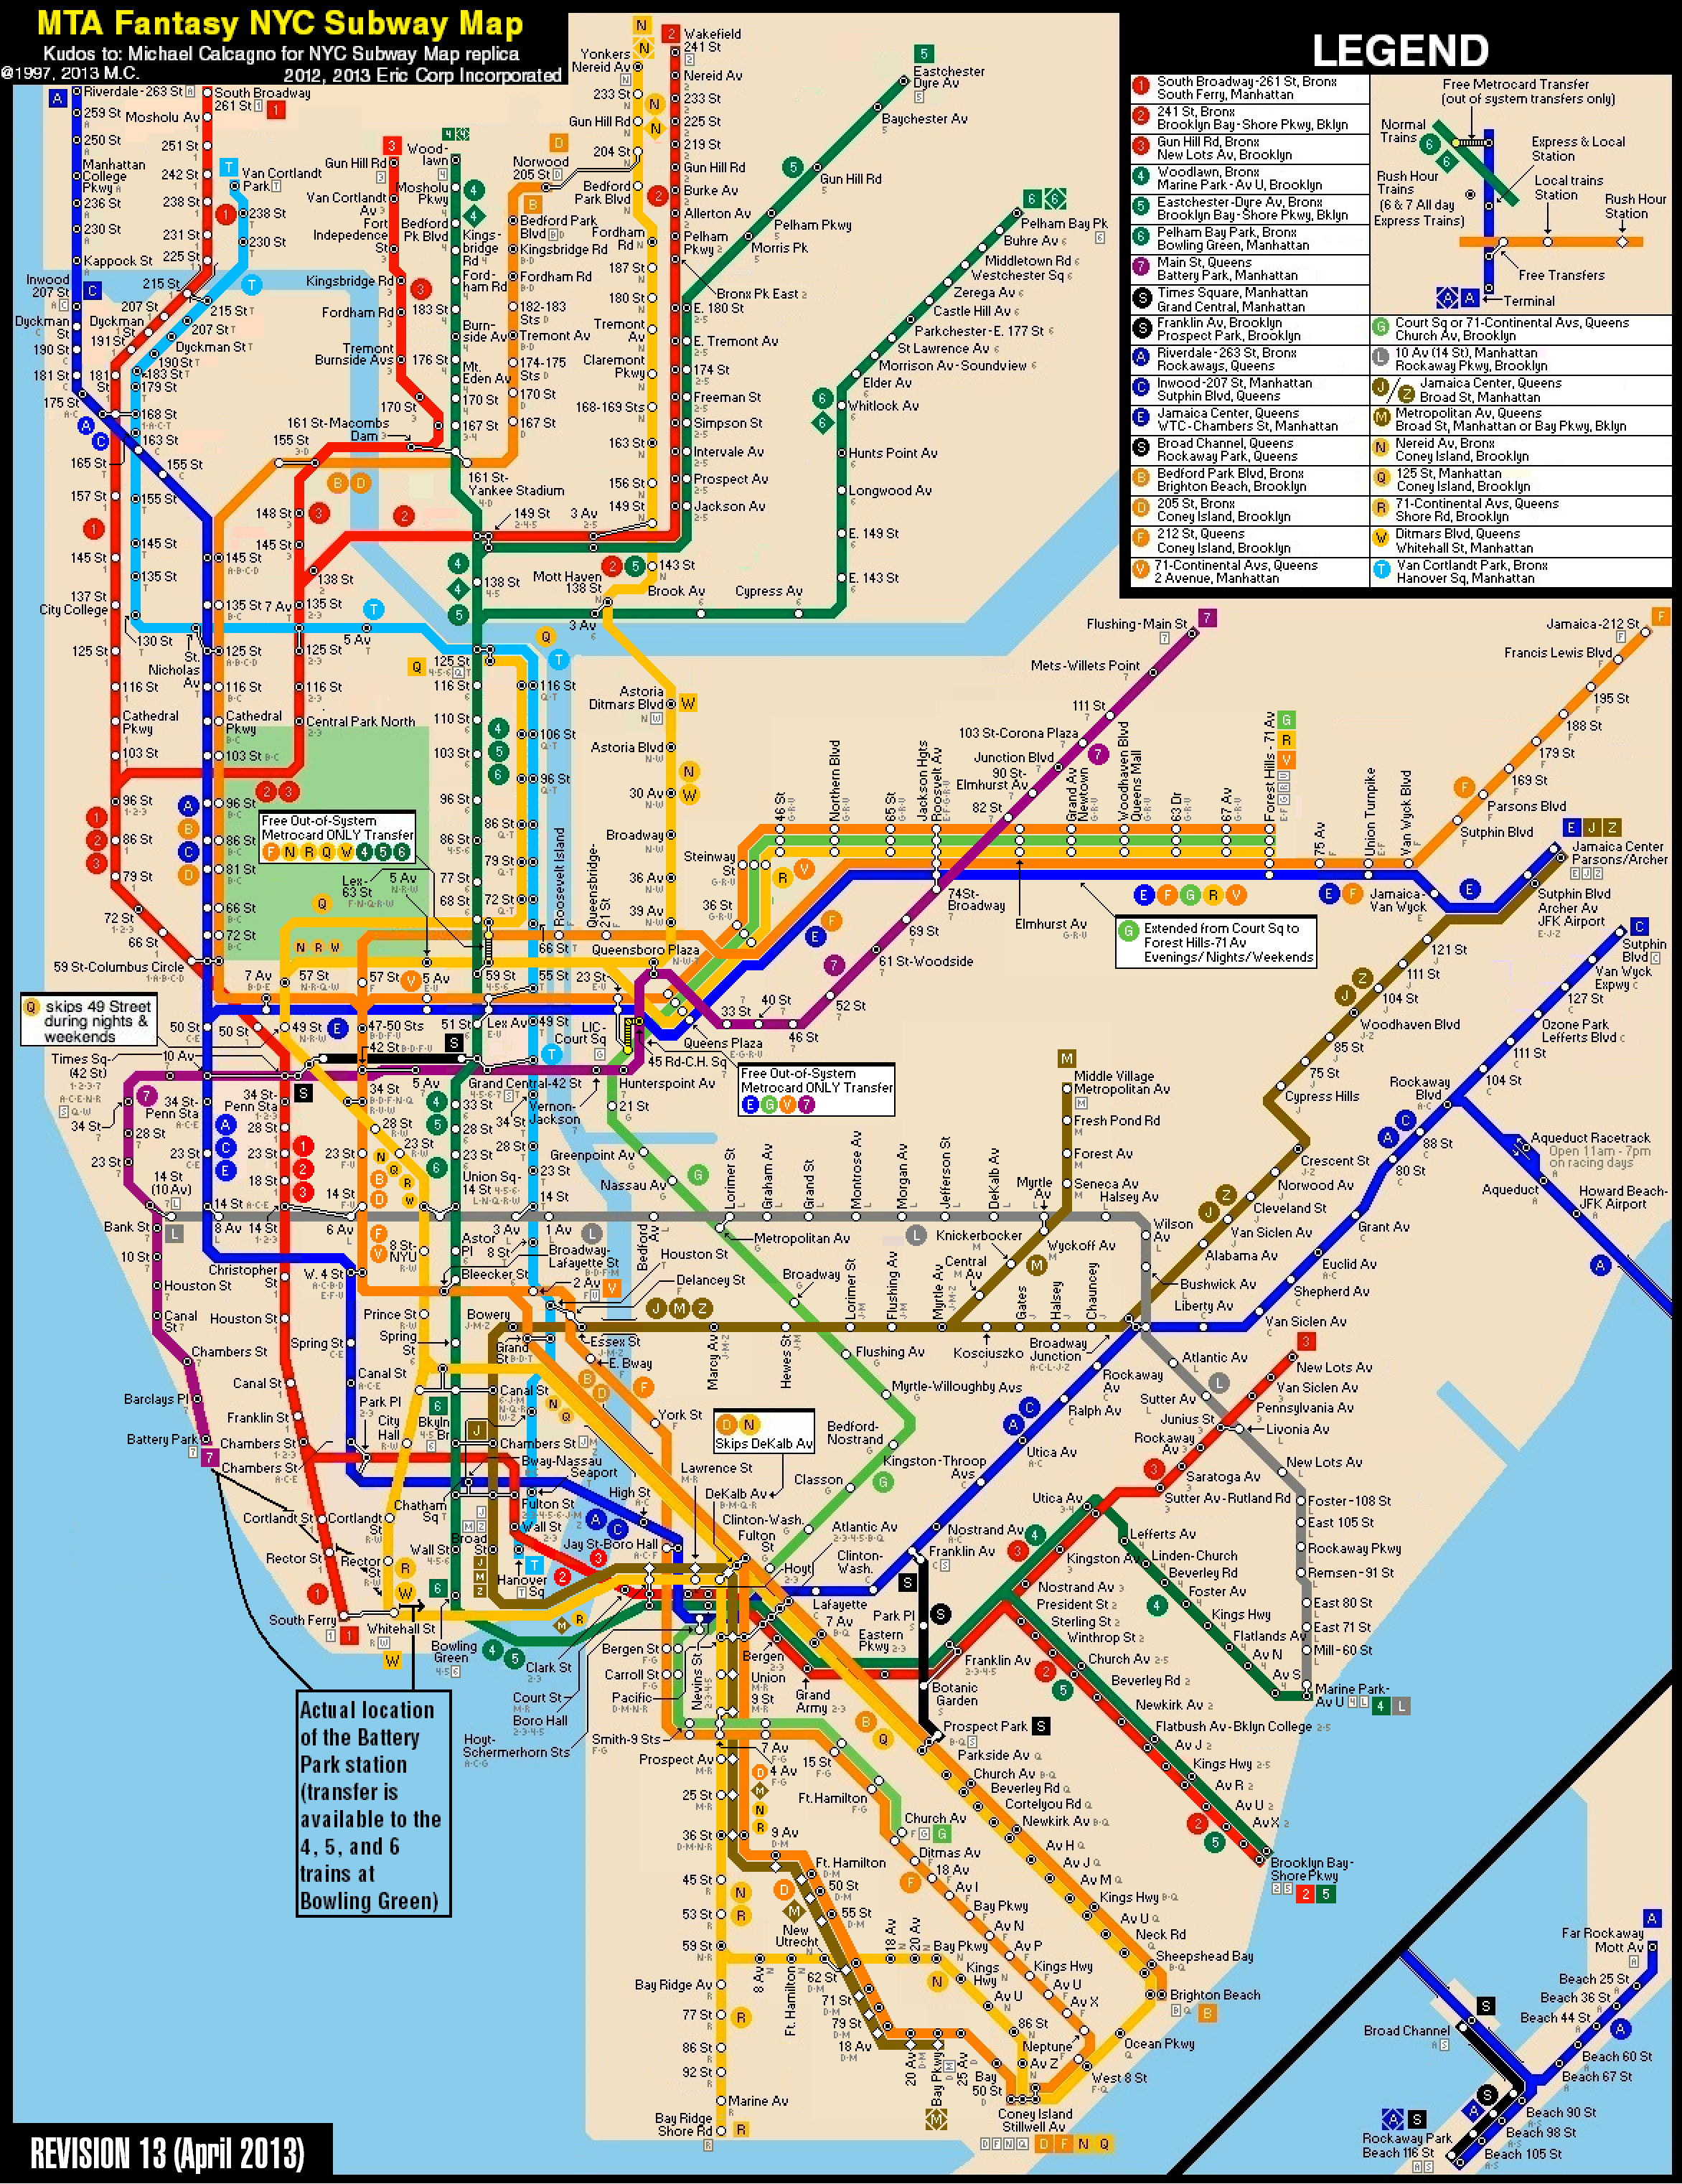 New York Subway Map New York City Subway Fantasy Map Revision - New york subway map with streets